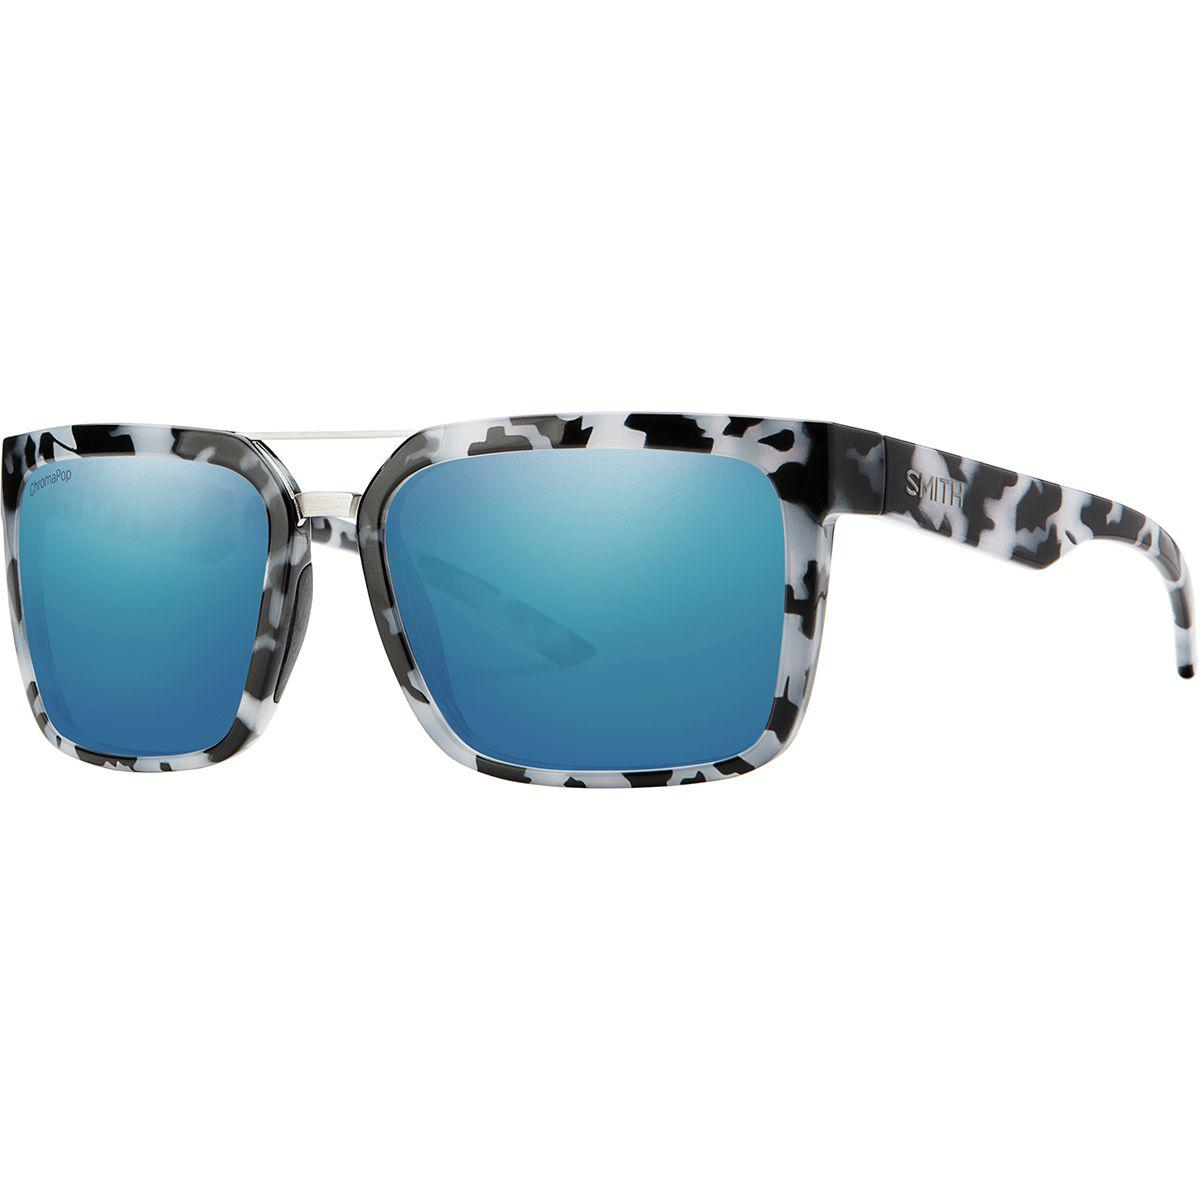 16f24912ee Lyst - Smith Highwire Chromapop Polarized Sunglasses in Blue for Men